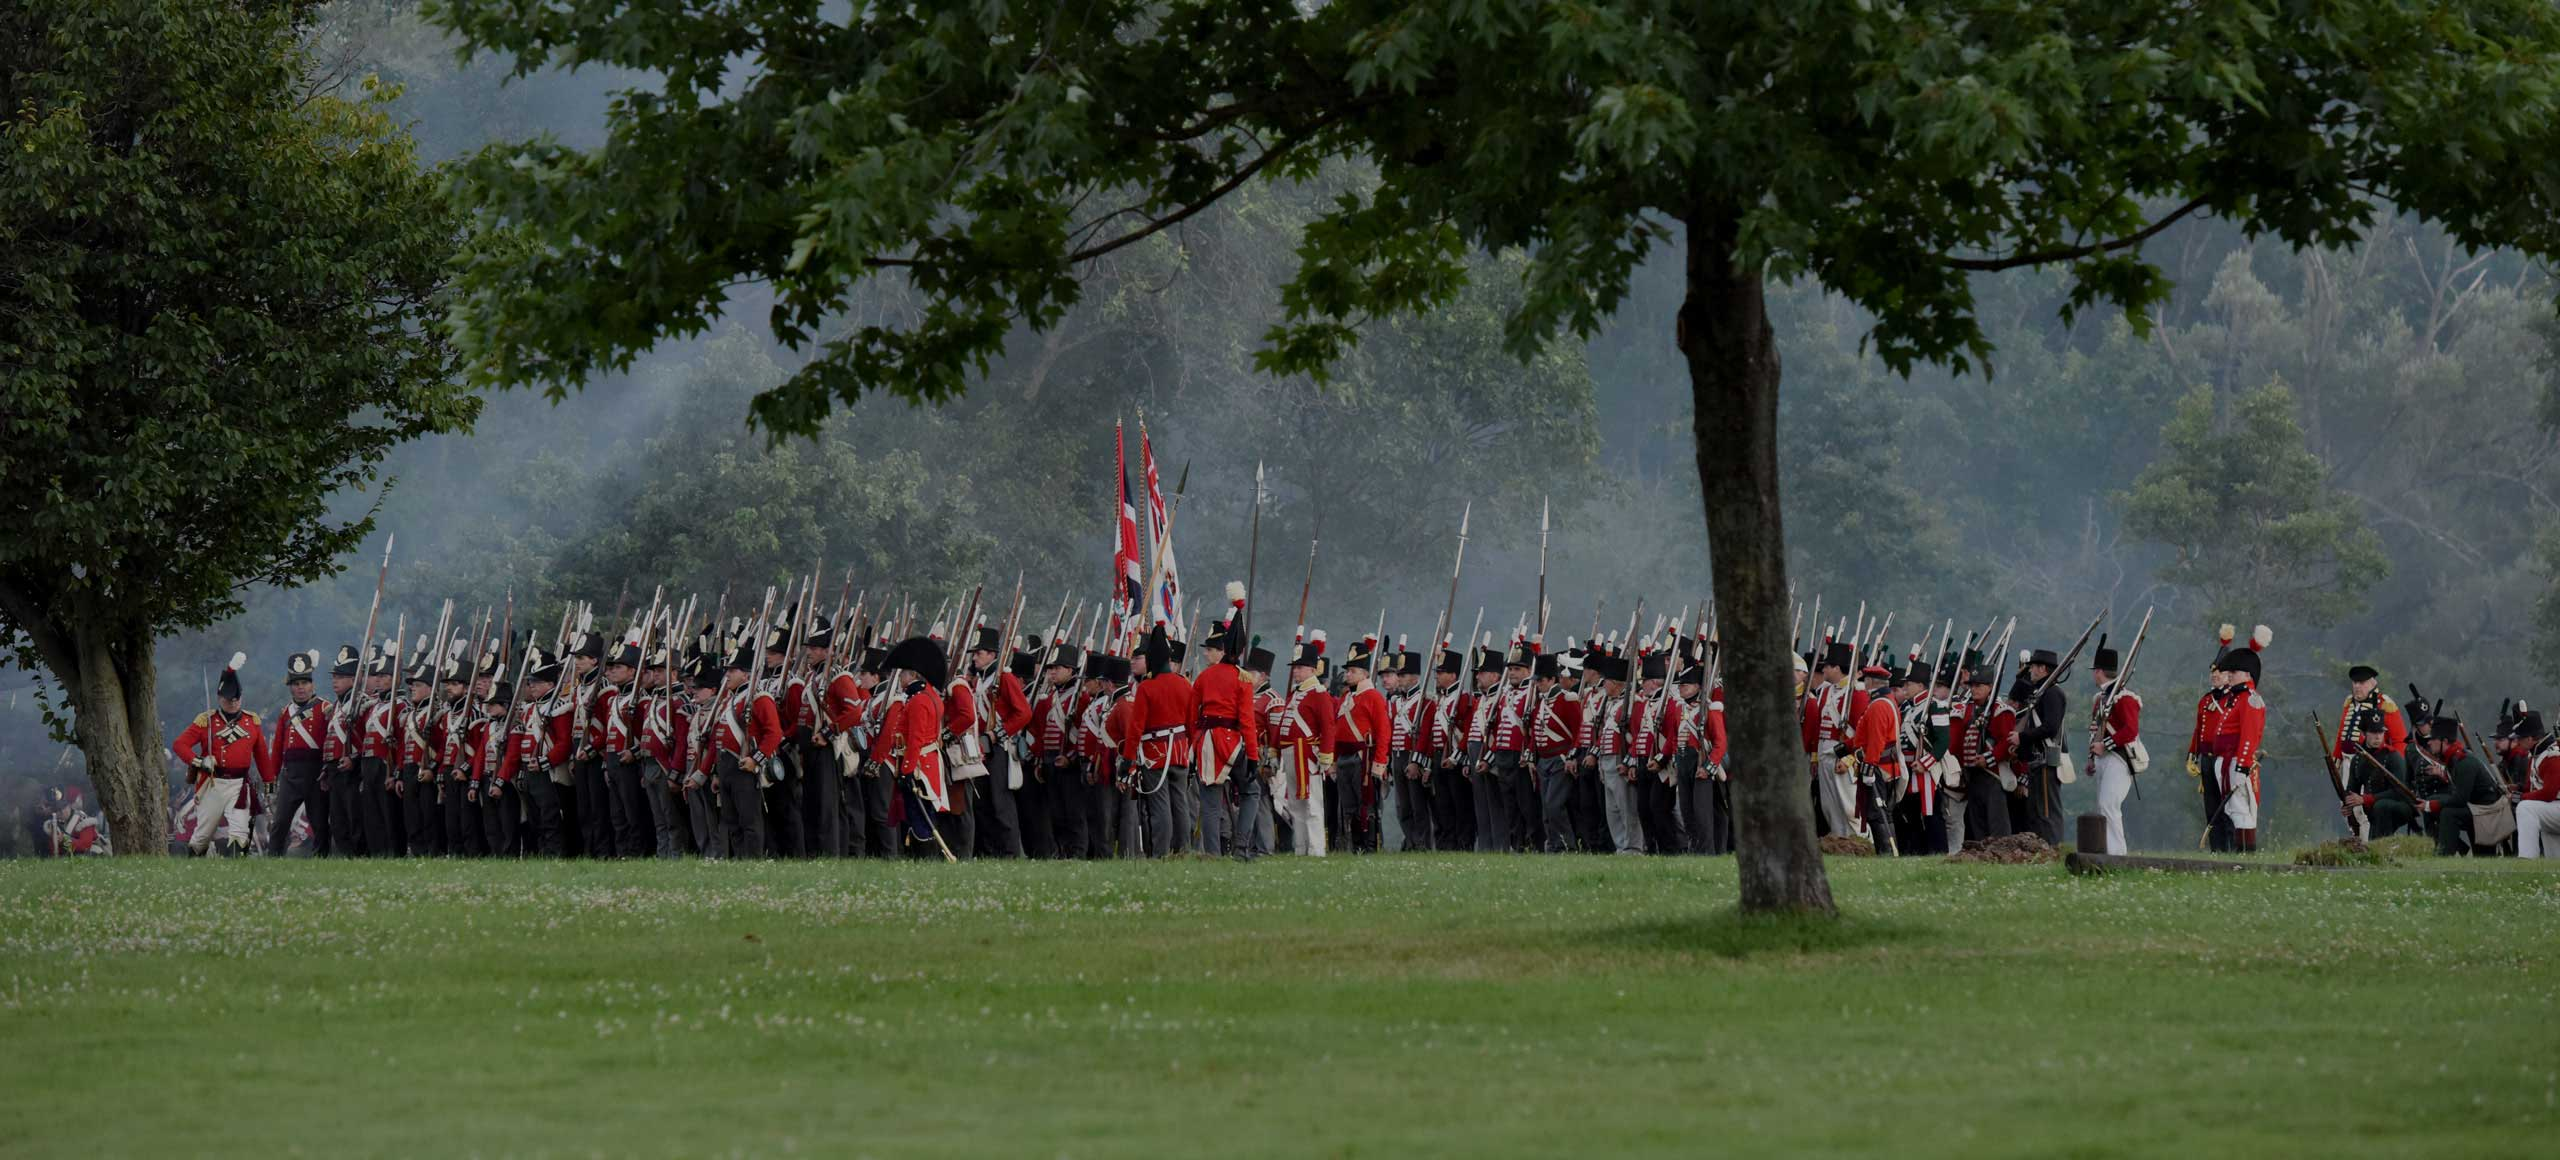 Annual Siege of Fort Erie Re-enactment Returns on New Weekend